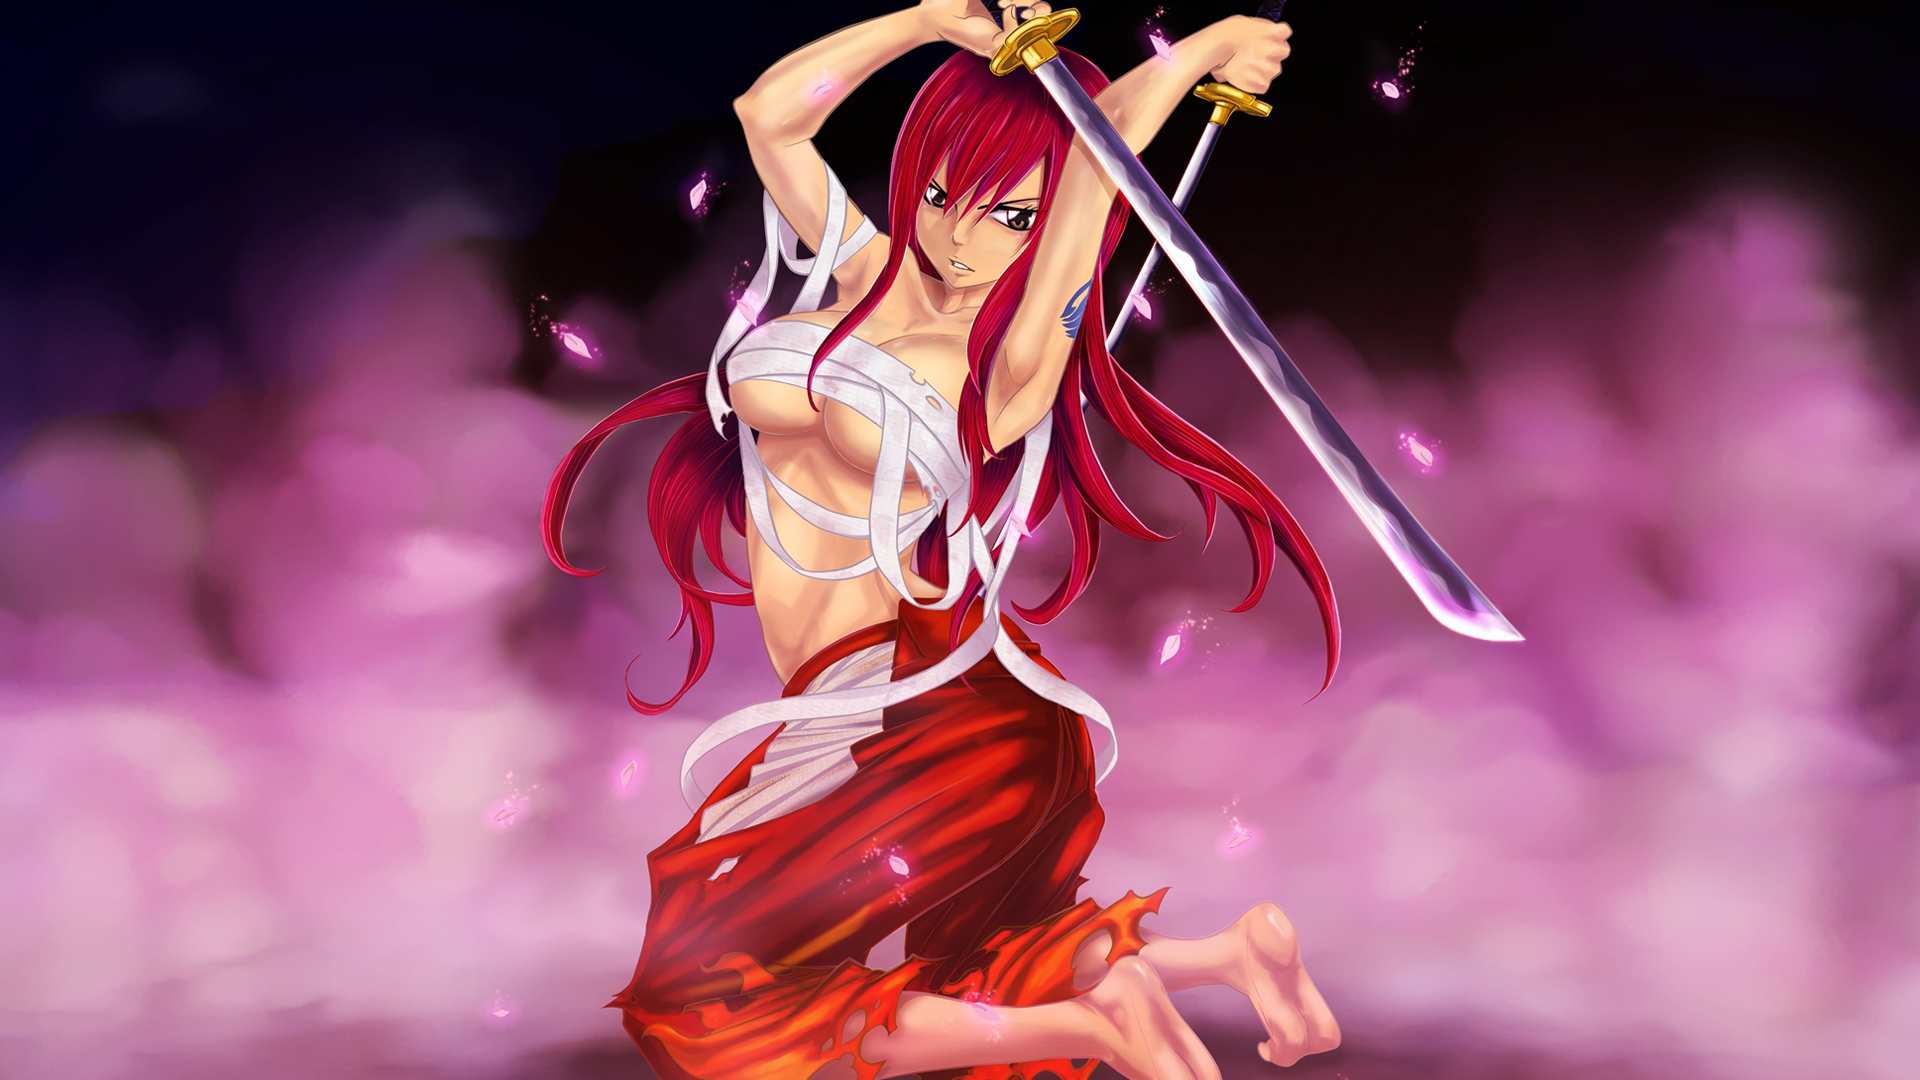 Free Download Sexy Erza Scarlet Katana Girl Anime Fairy Tail Hd